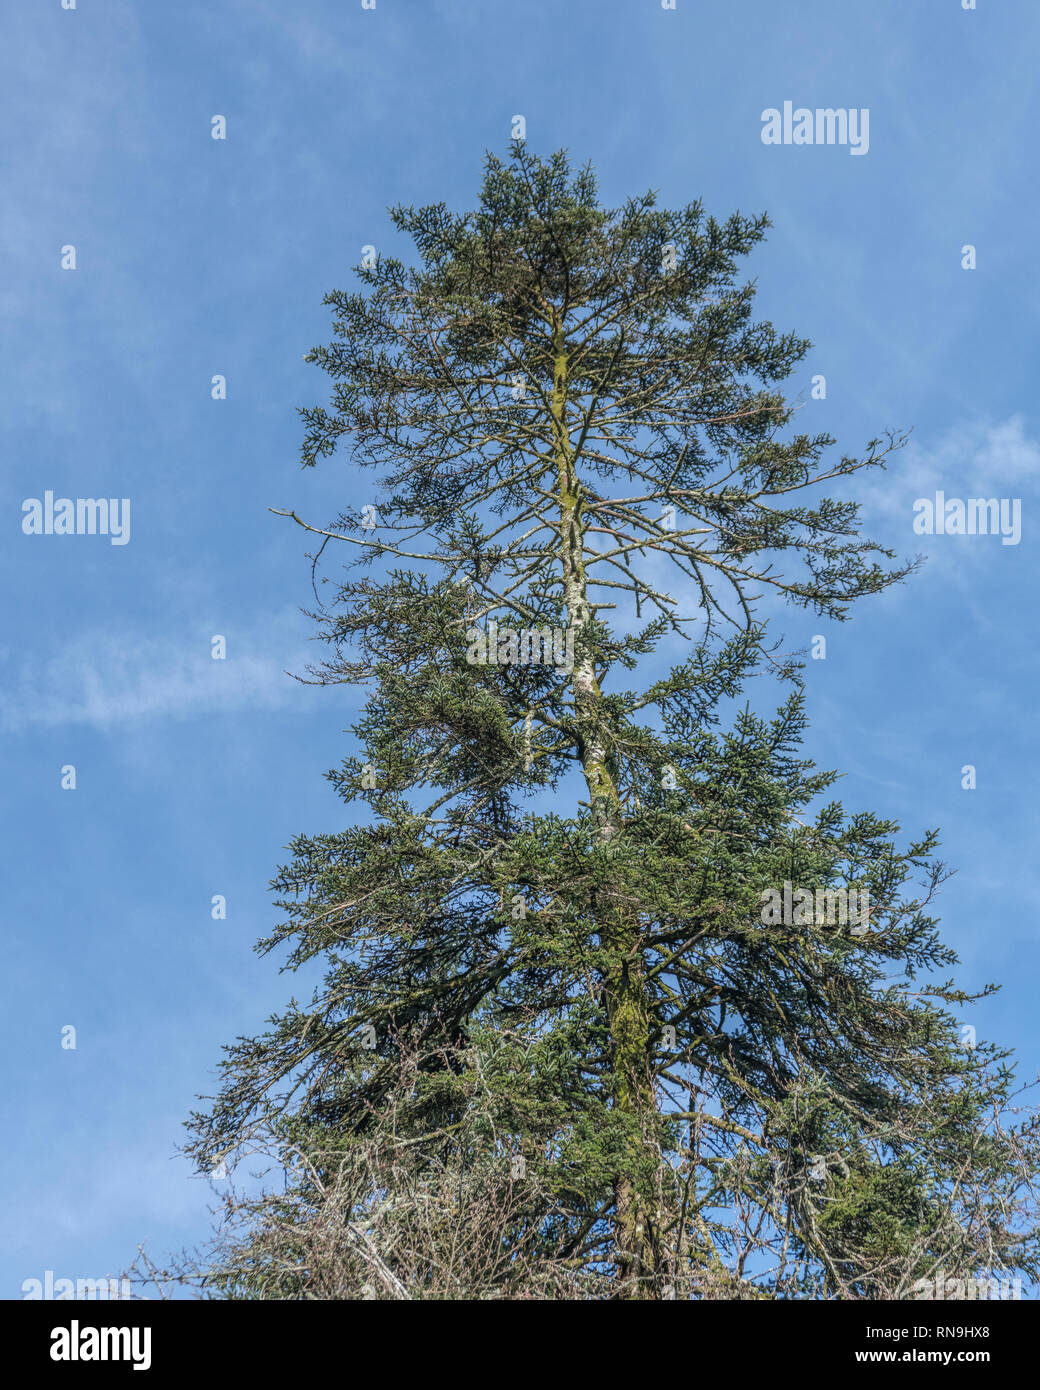 Coniferous tree canopy against blue springtime sky. - Stock Image